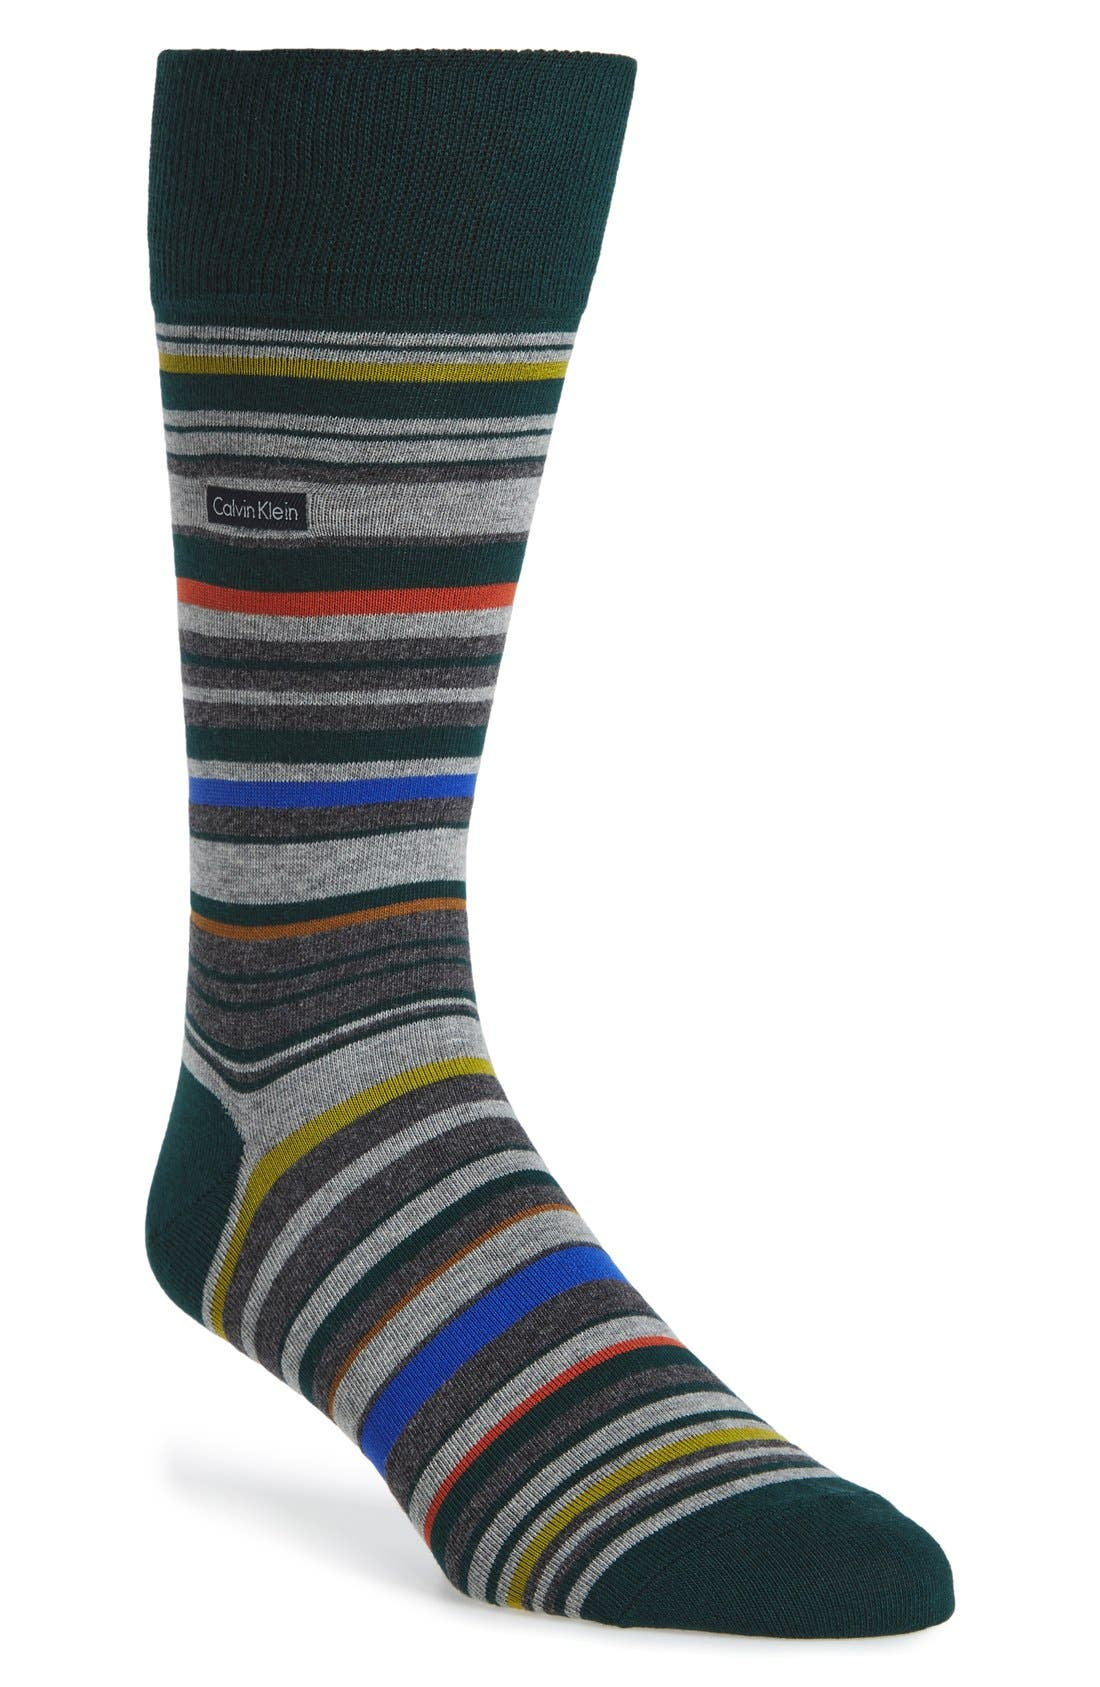 Multistripe Emblem Socks,                         Main,                         color, Spruce